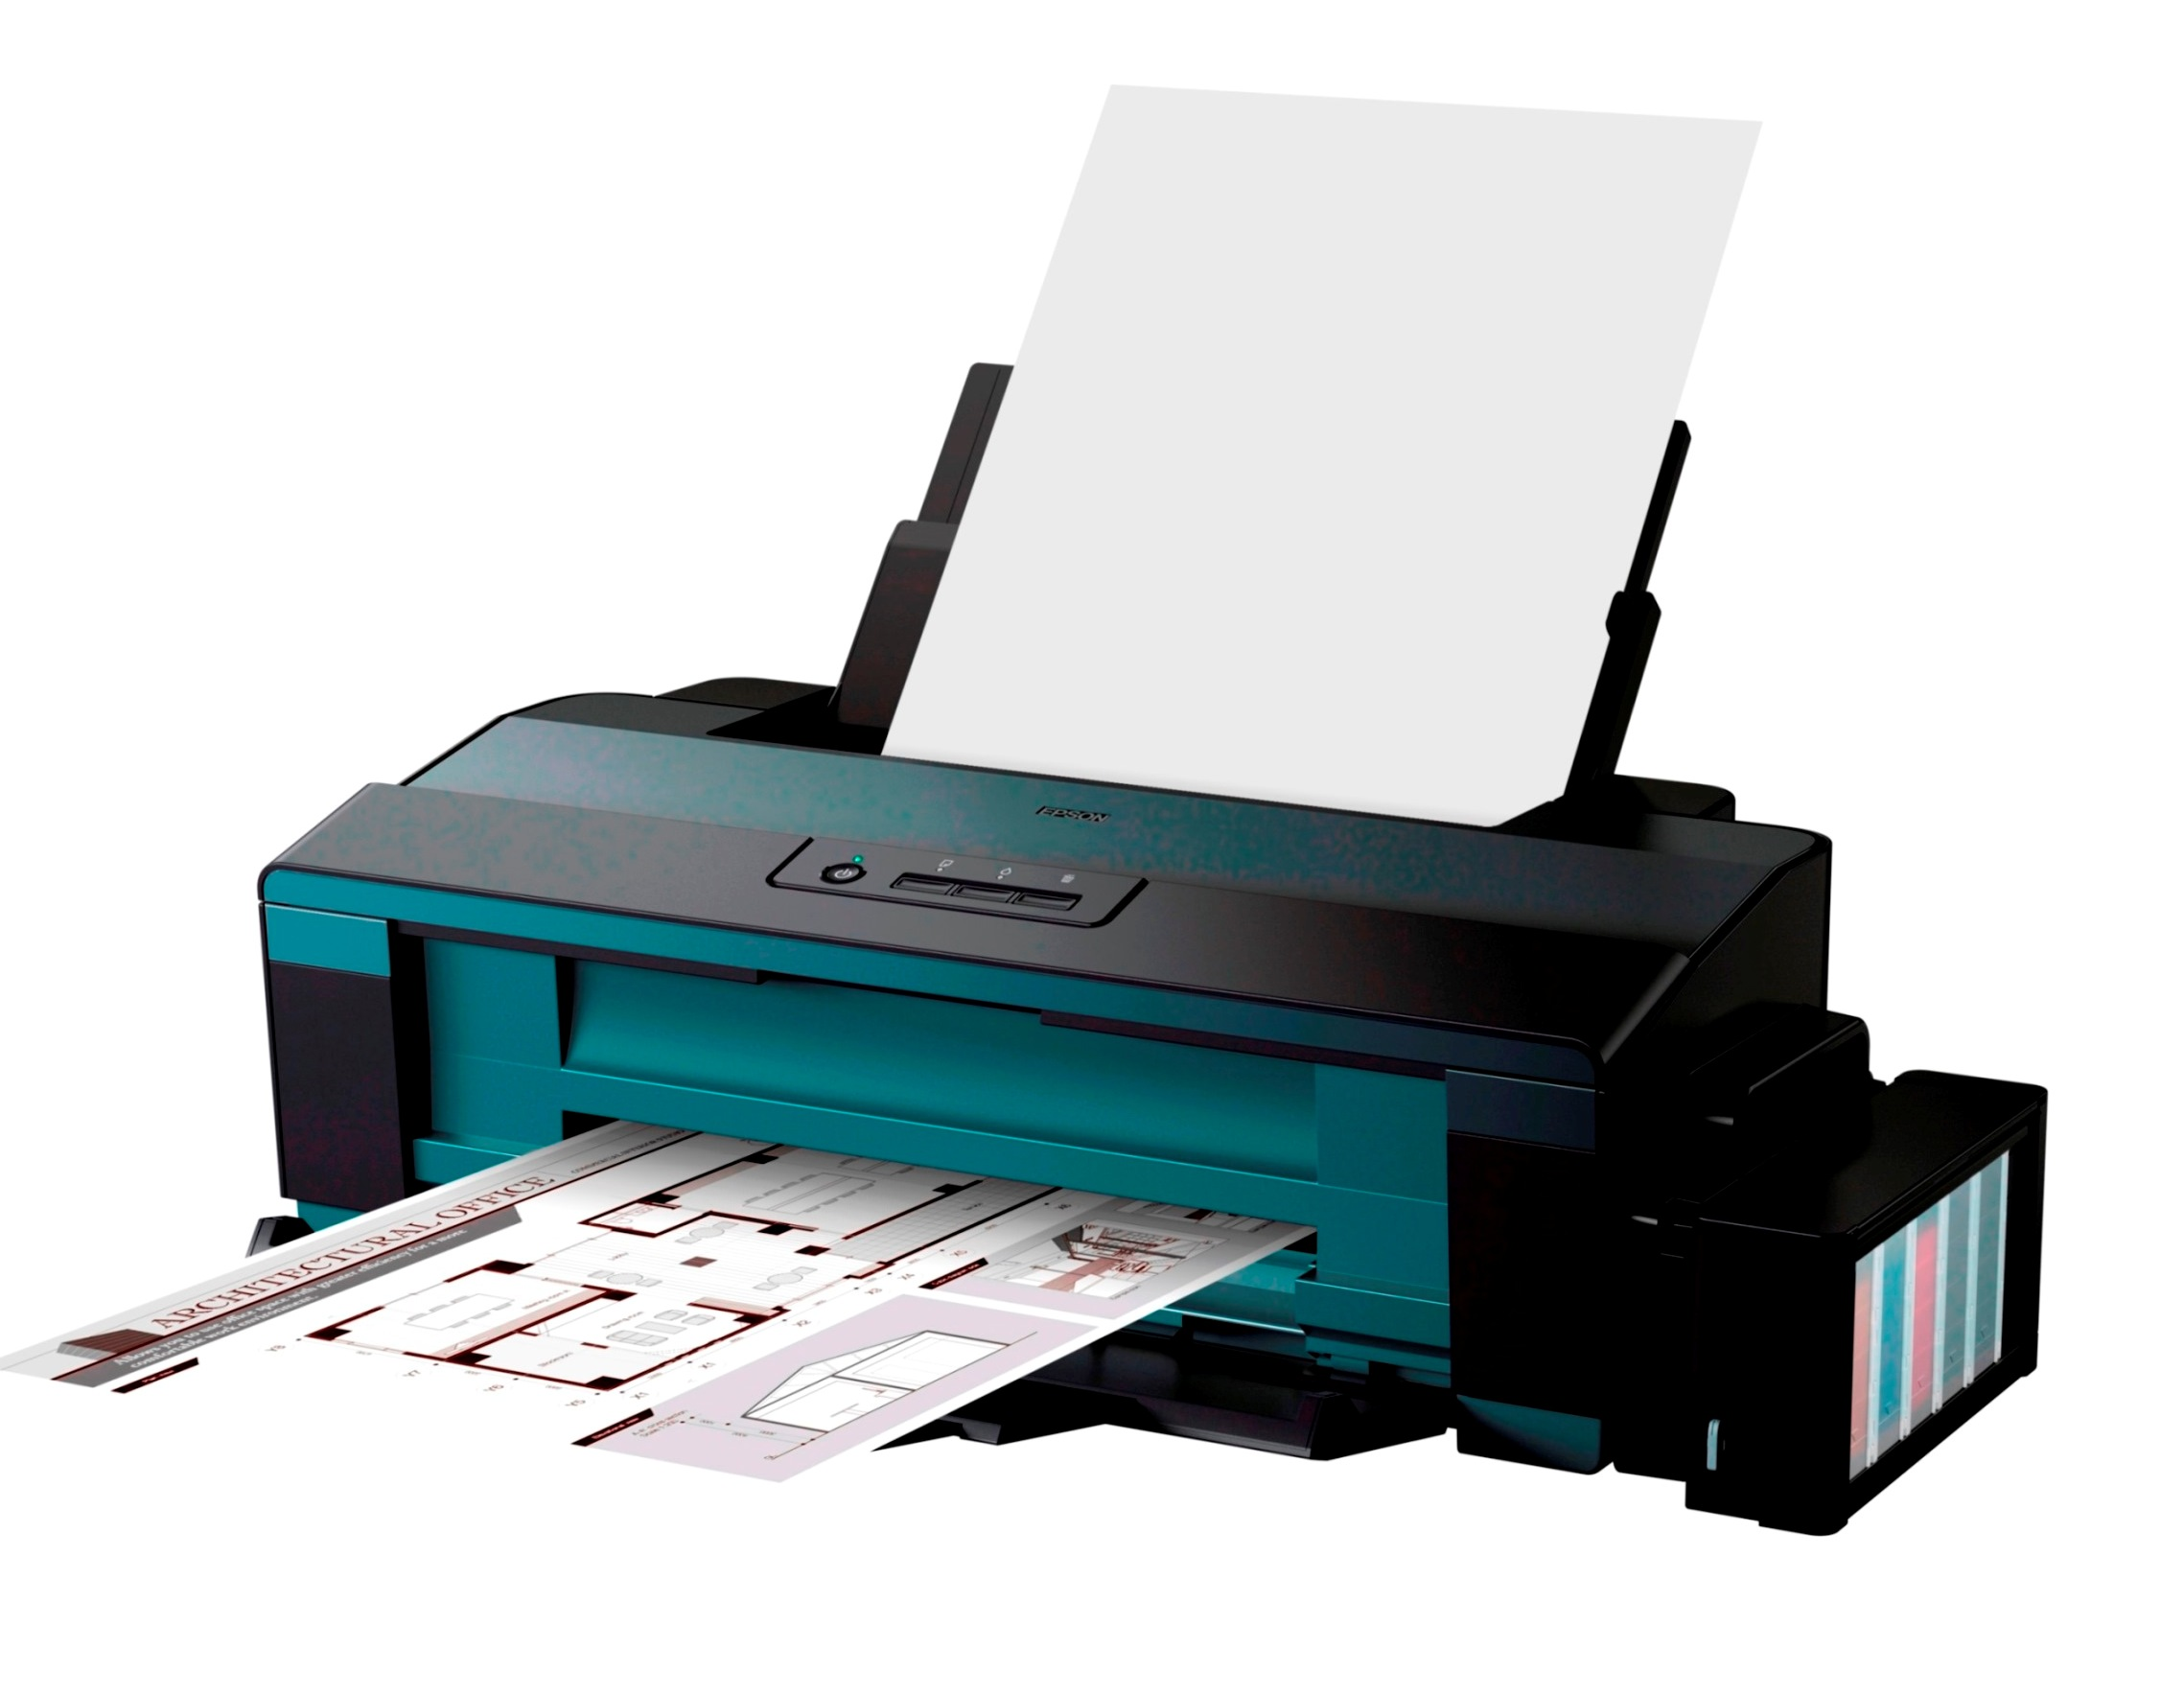 Epson L120- a smaller, faster and cost effective printer